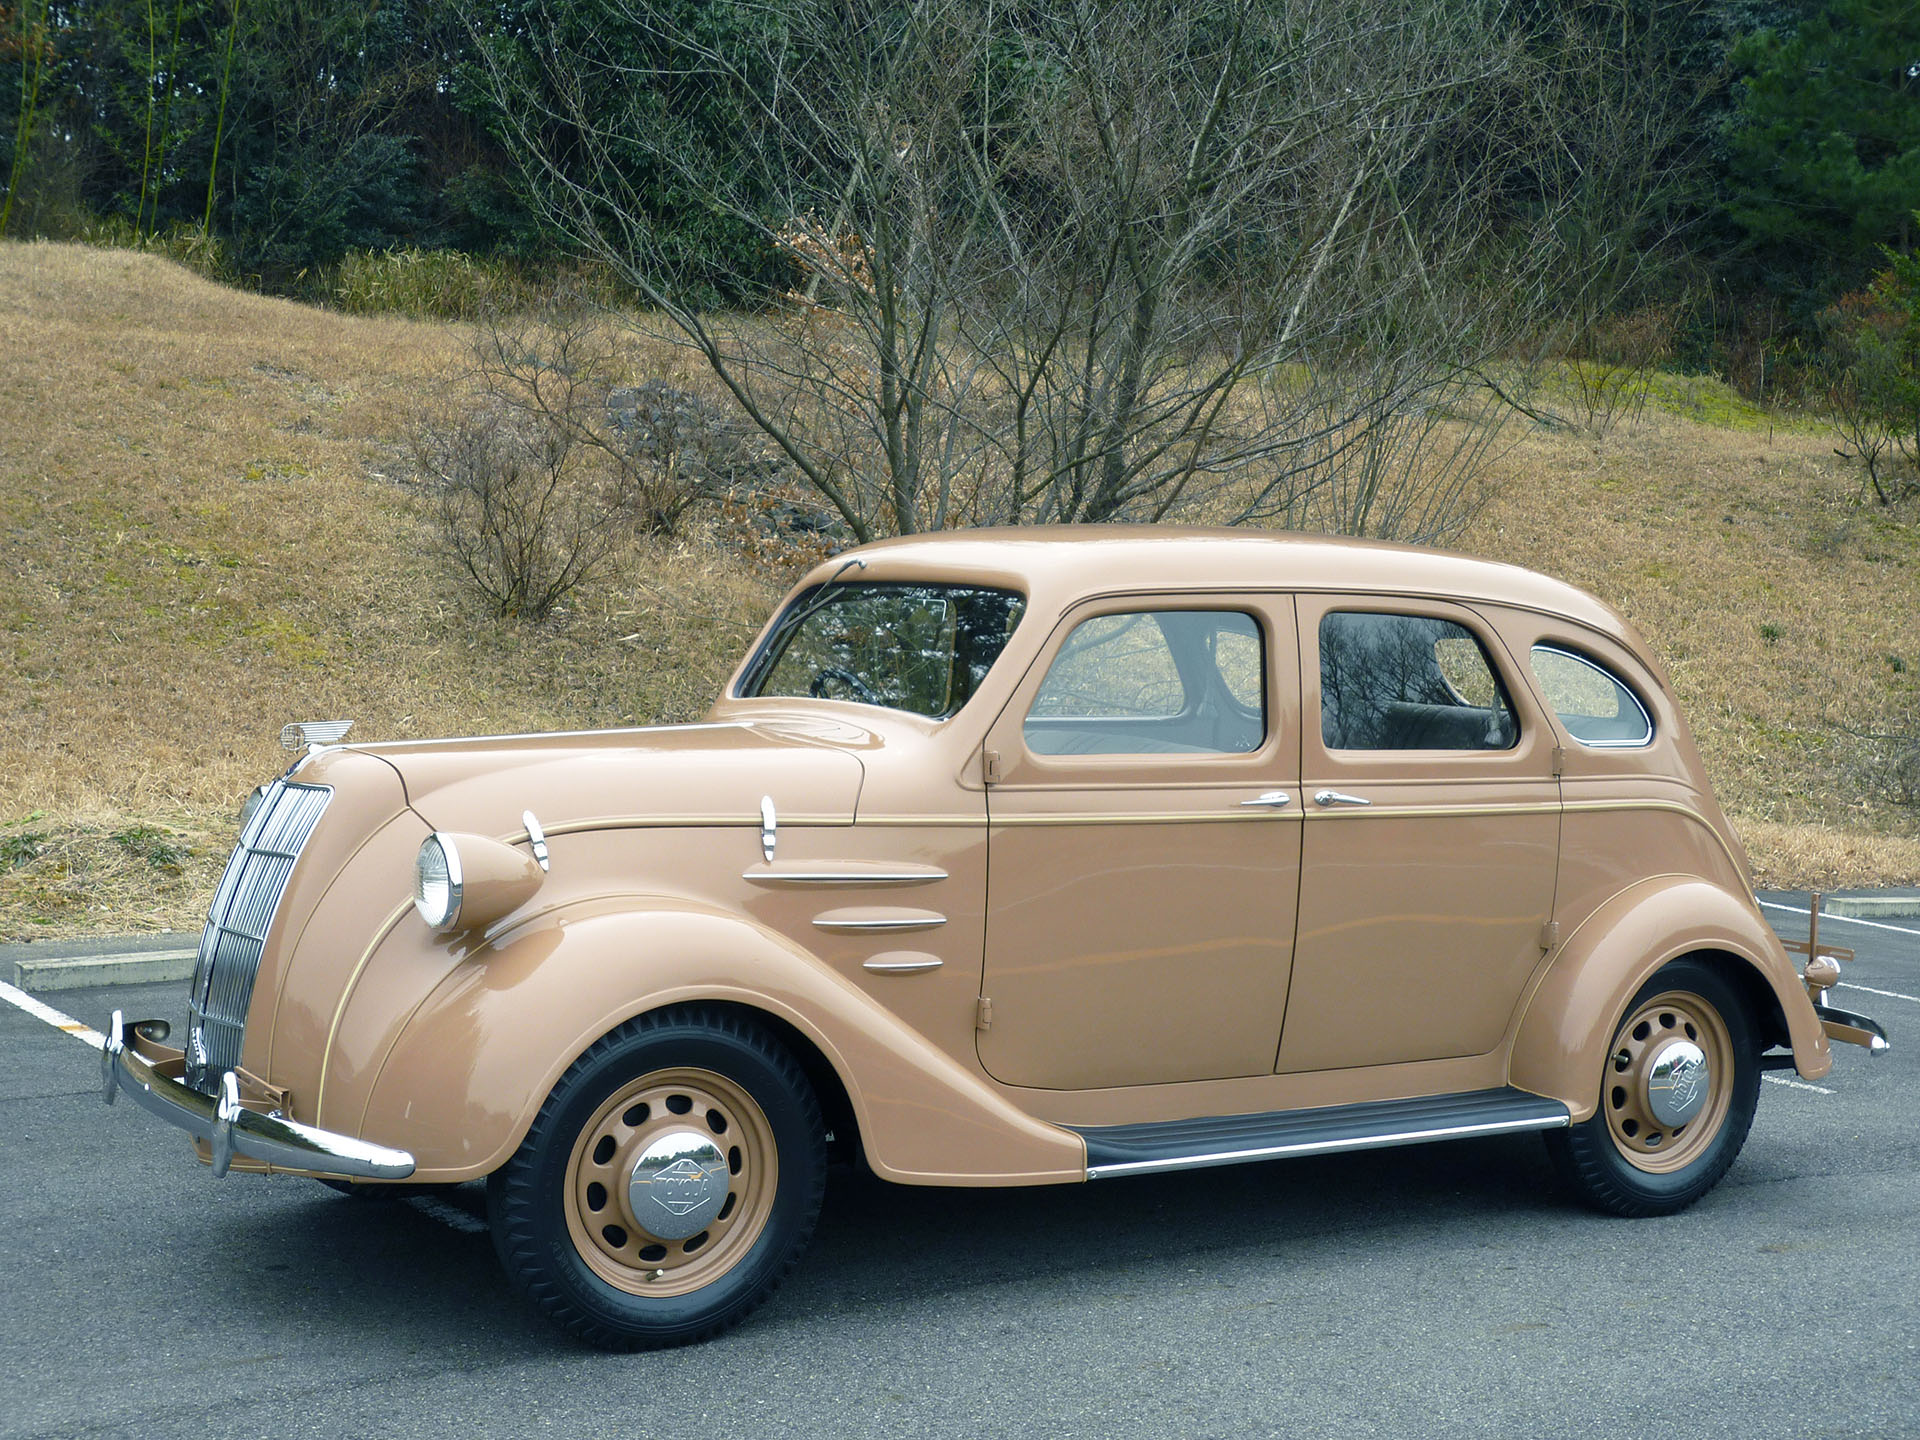 Toyota Models 2015 >> Toyota Classic Car Festival to be Bigger Than Ever Before | The News Wheel